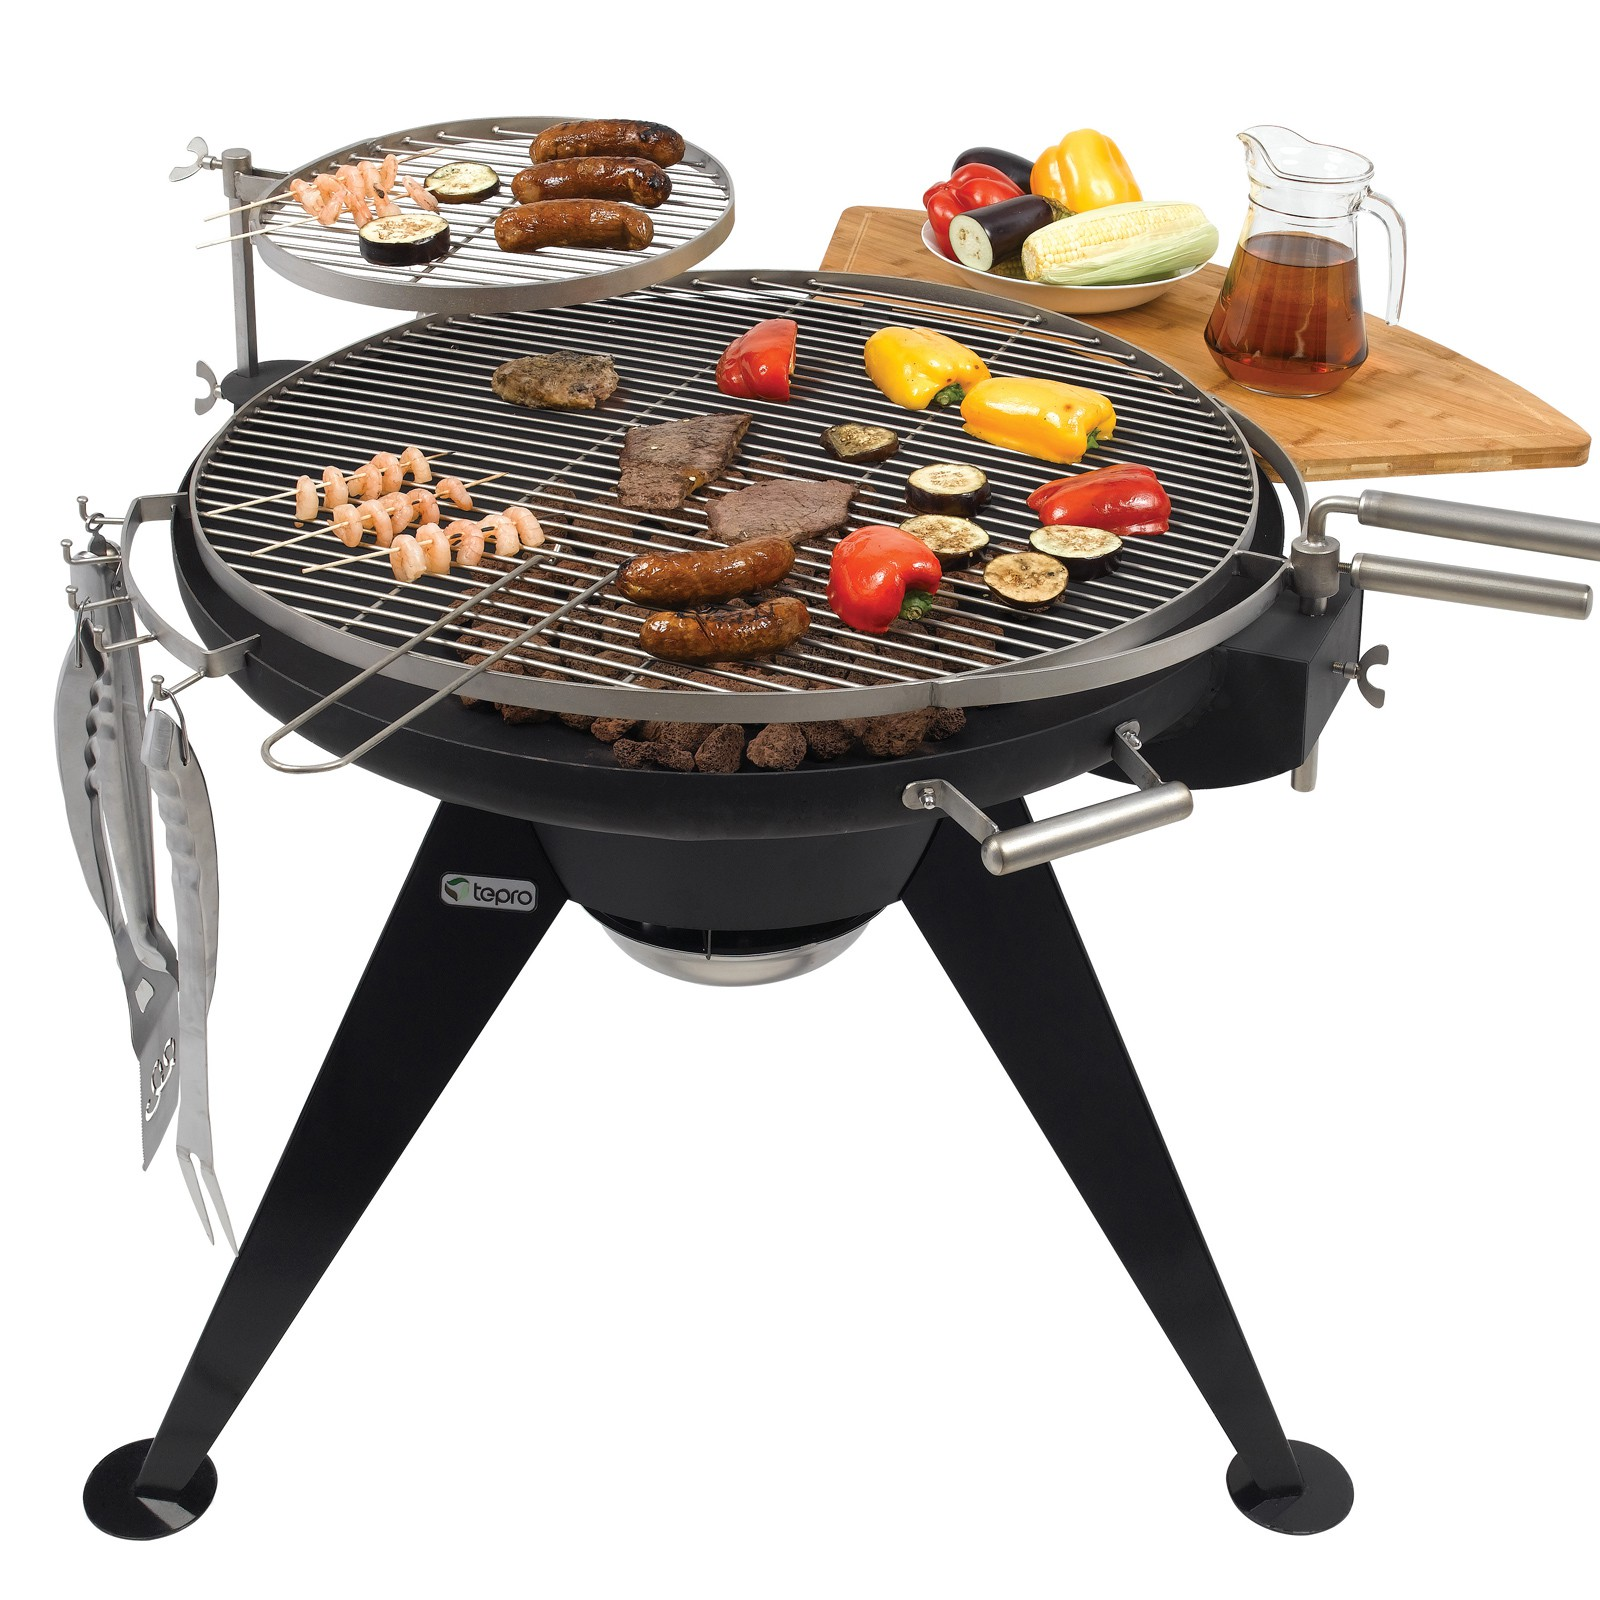 tepro holzkohlengrill standgrill cranford schwenkrost kohlegrill campinggrill ebay. Black Bedroom Furniture Sets. Home Design Ideas